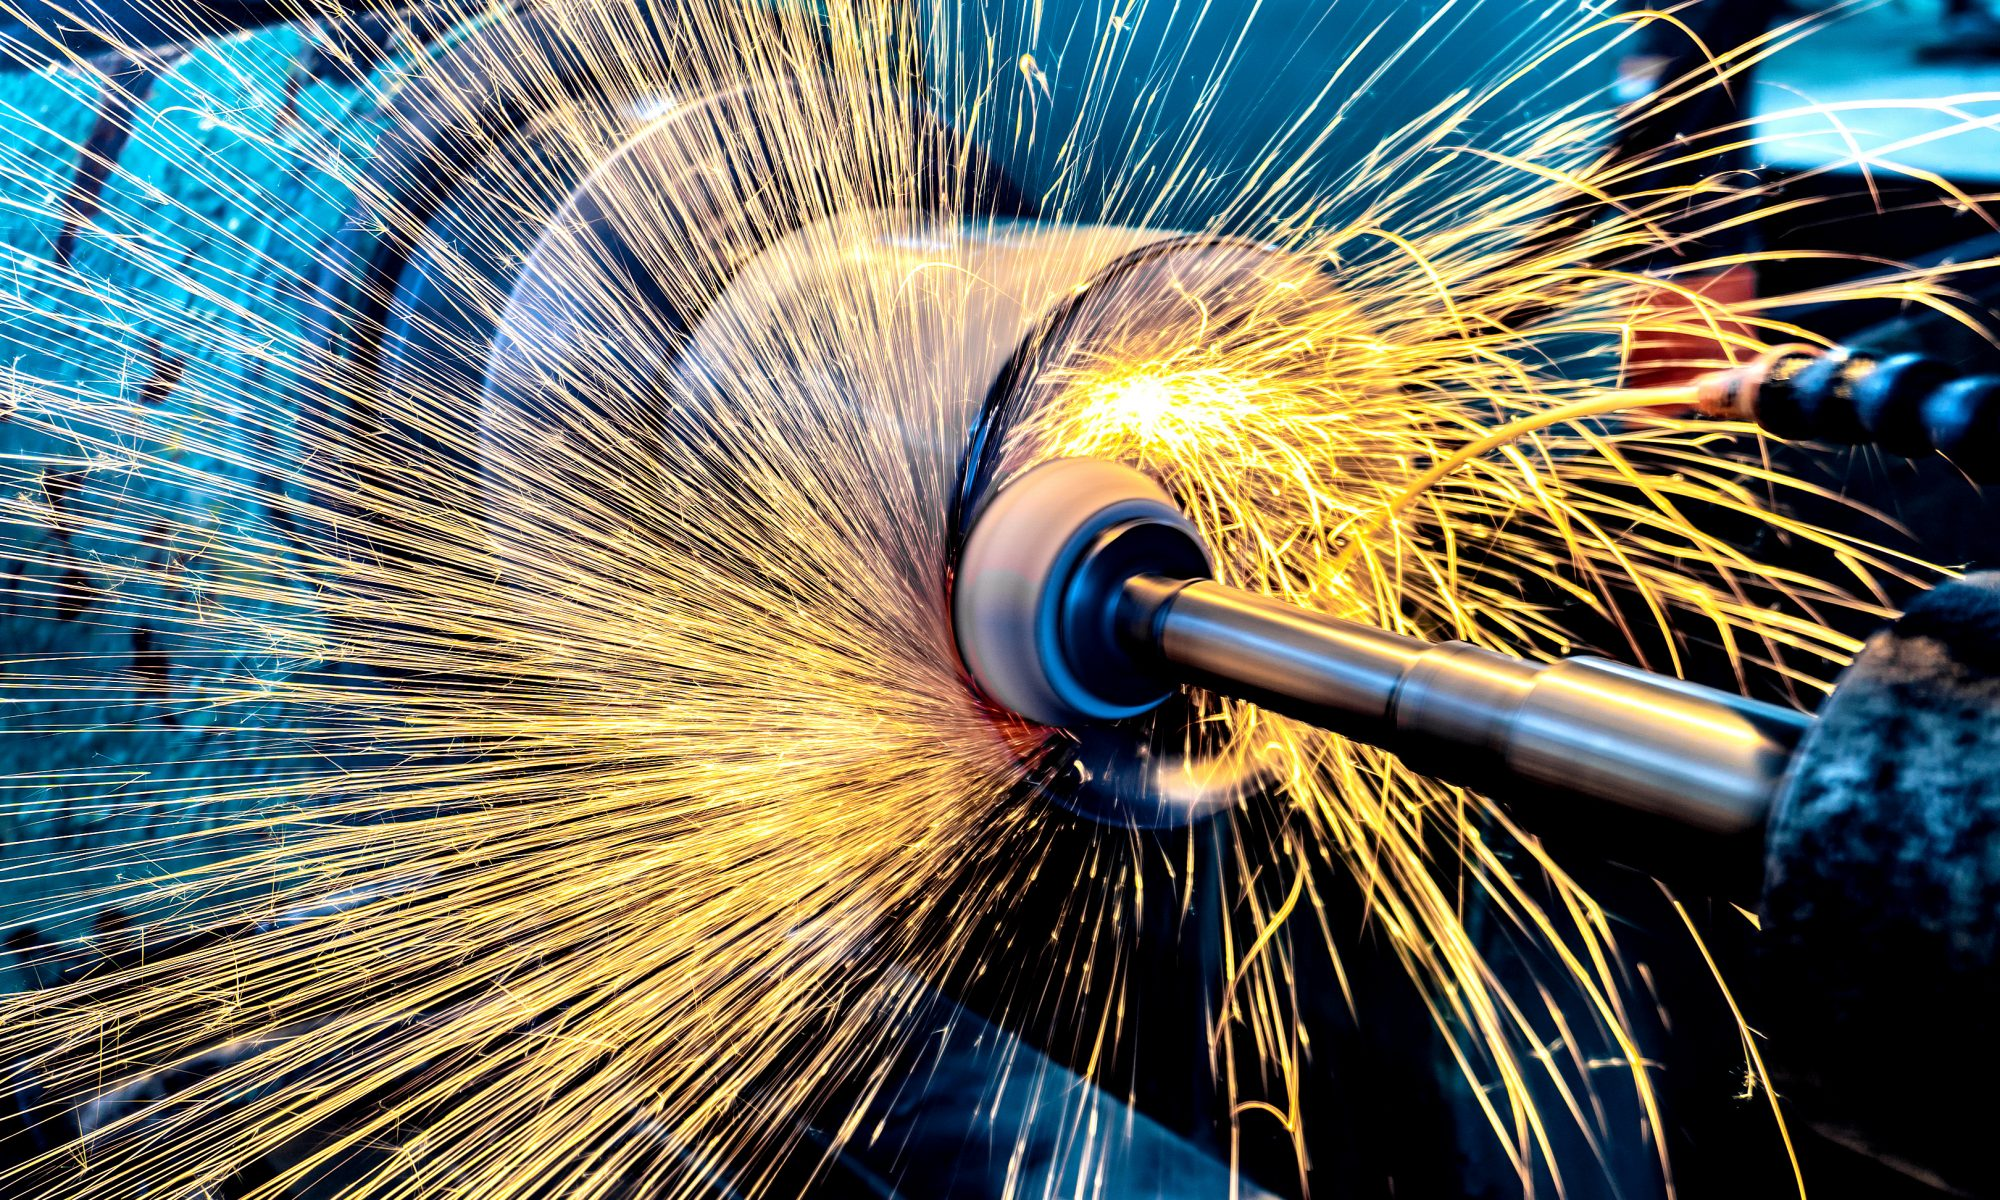 High abrasive grinder machining a cylinder and throwing sparks